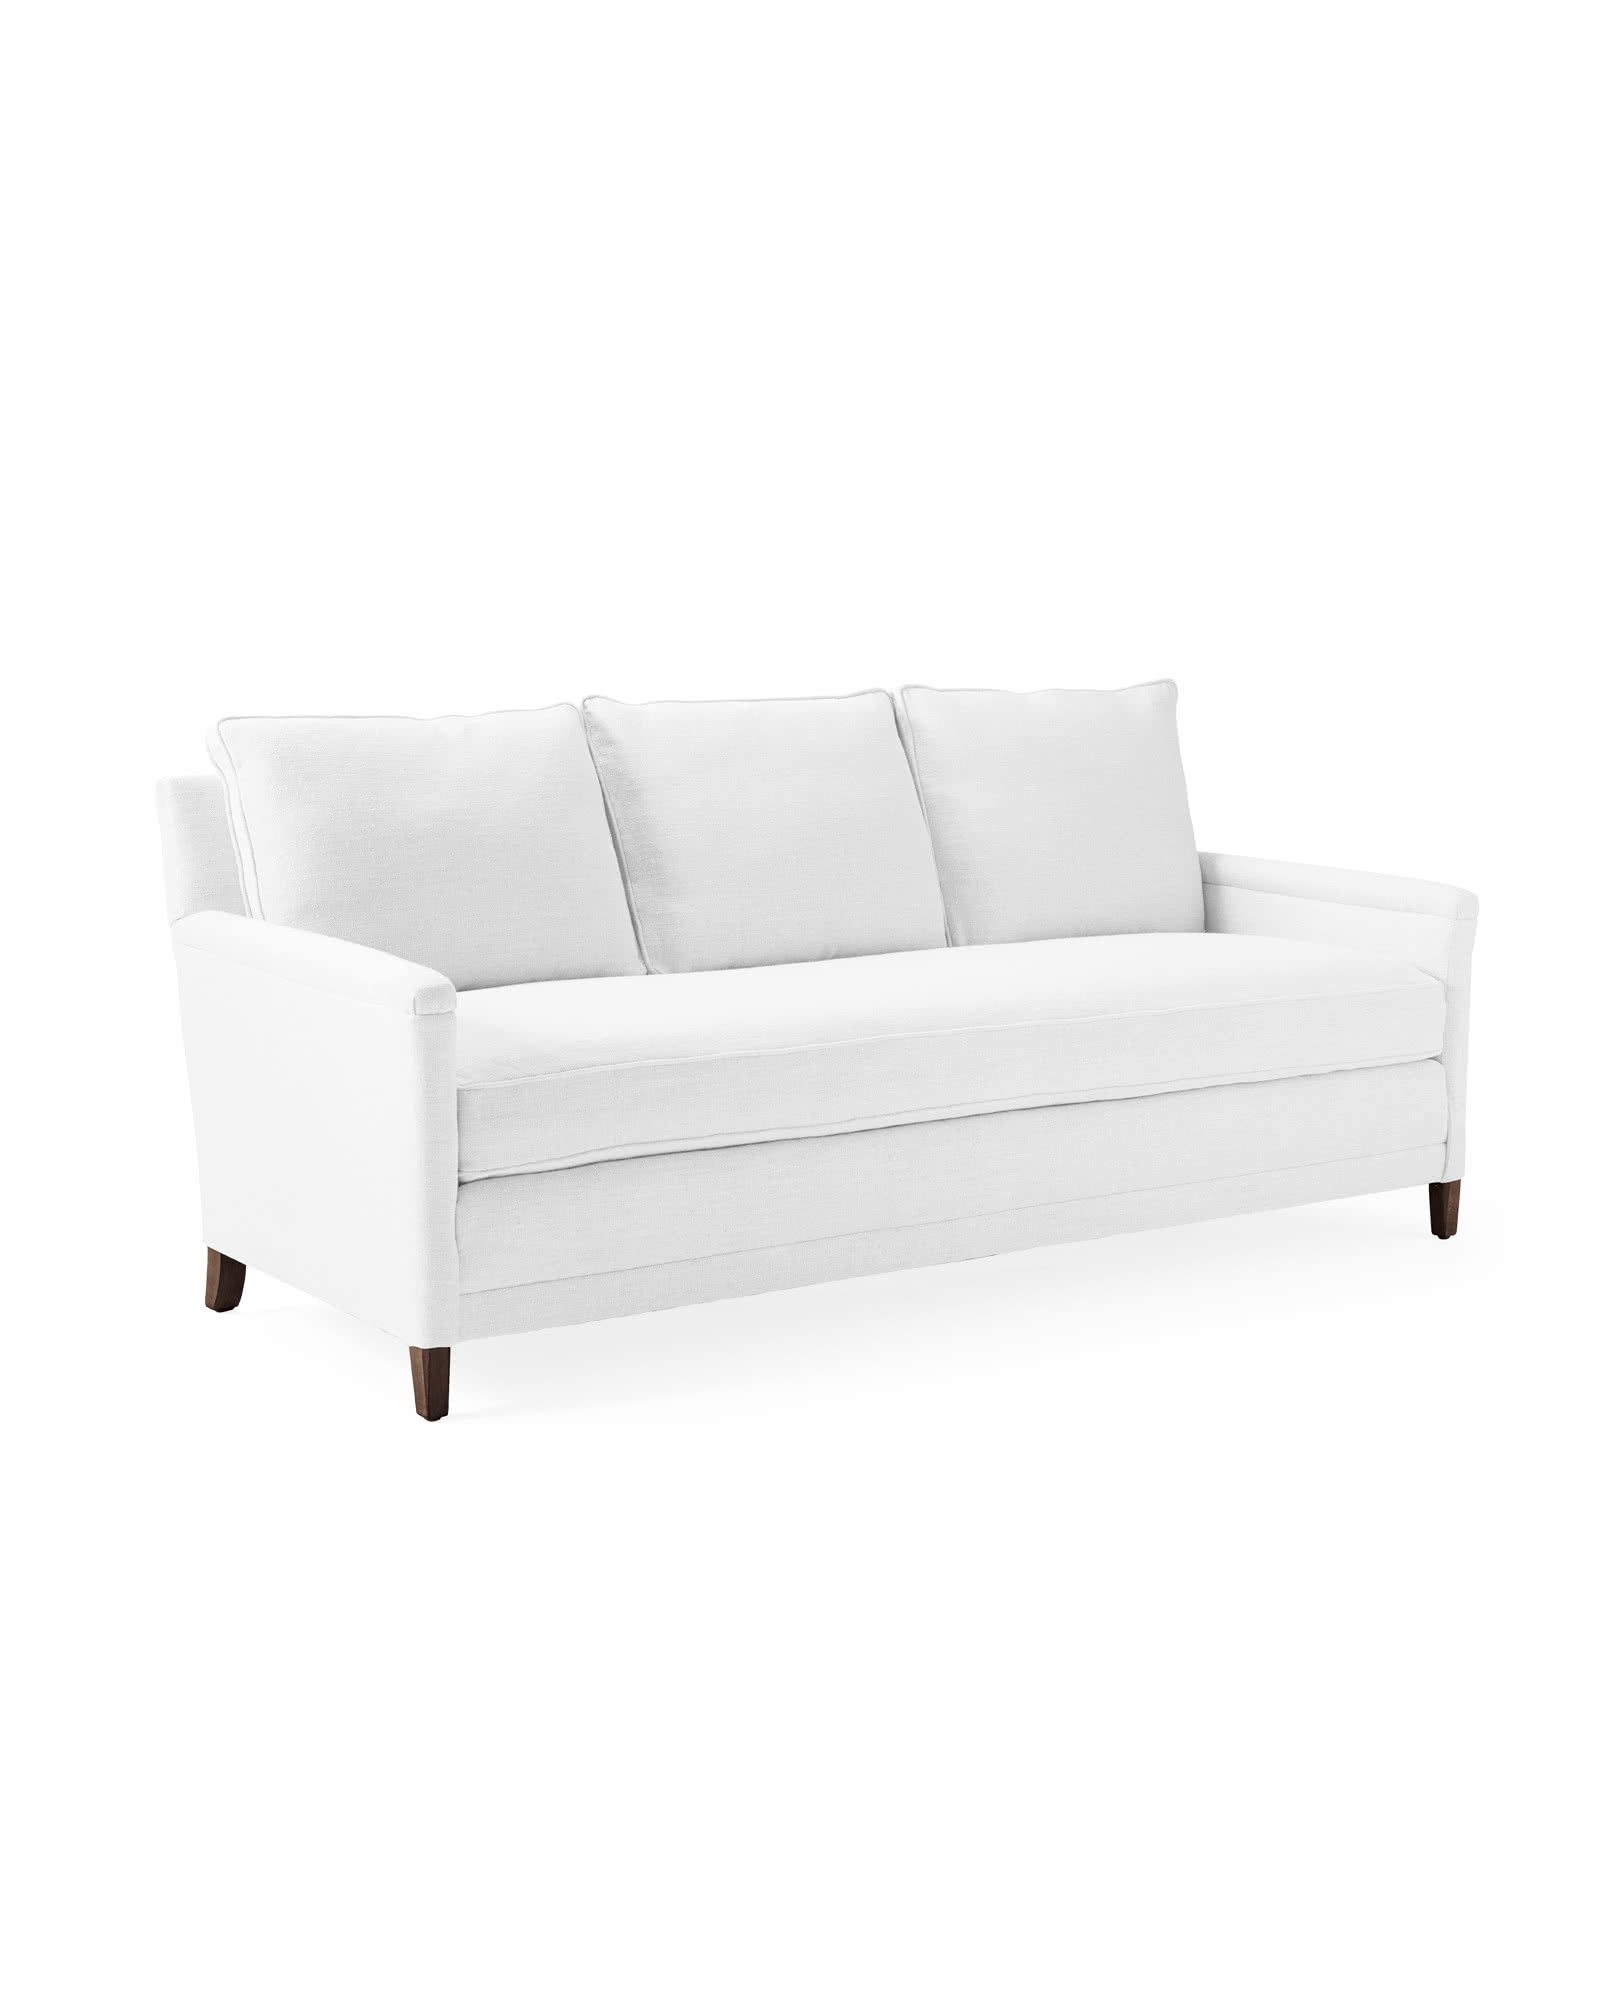 Spruce Street 3-Seat Sofa with Bench Seat,